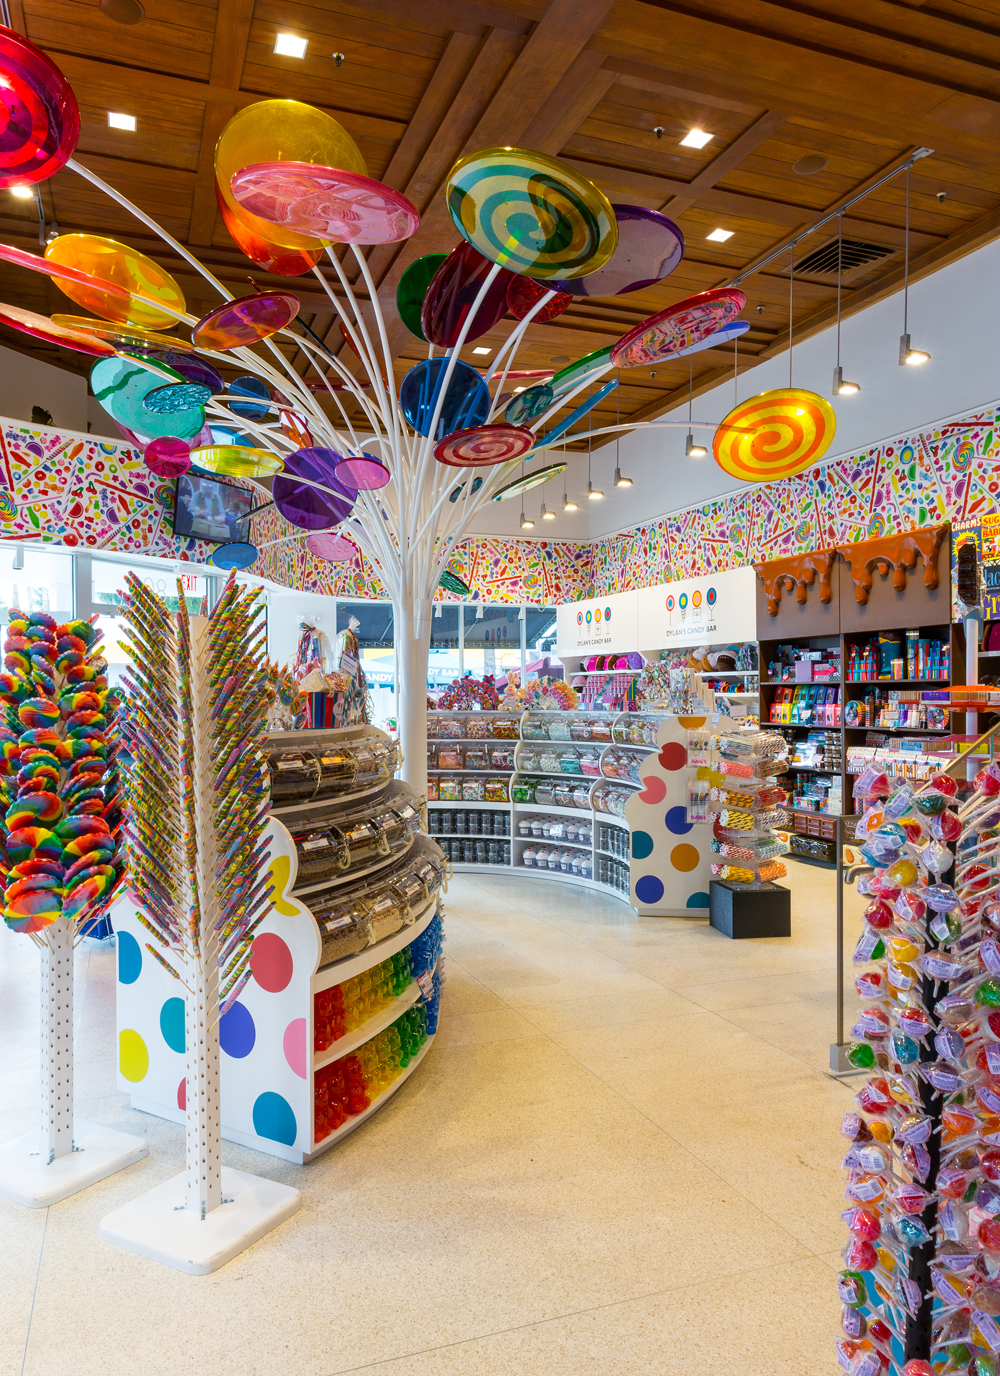 I love Dylan's New York shop, so when I stumbled across the Dylan's Candy Bar in Chicago I had to stop in! It feels a little smaller and darker than the NYC location, but they appear to pack in just as much candy/5().